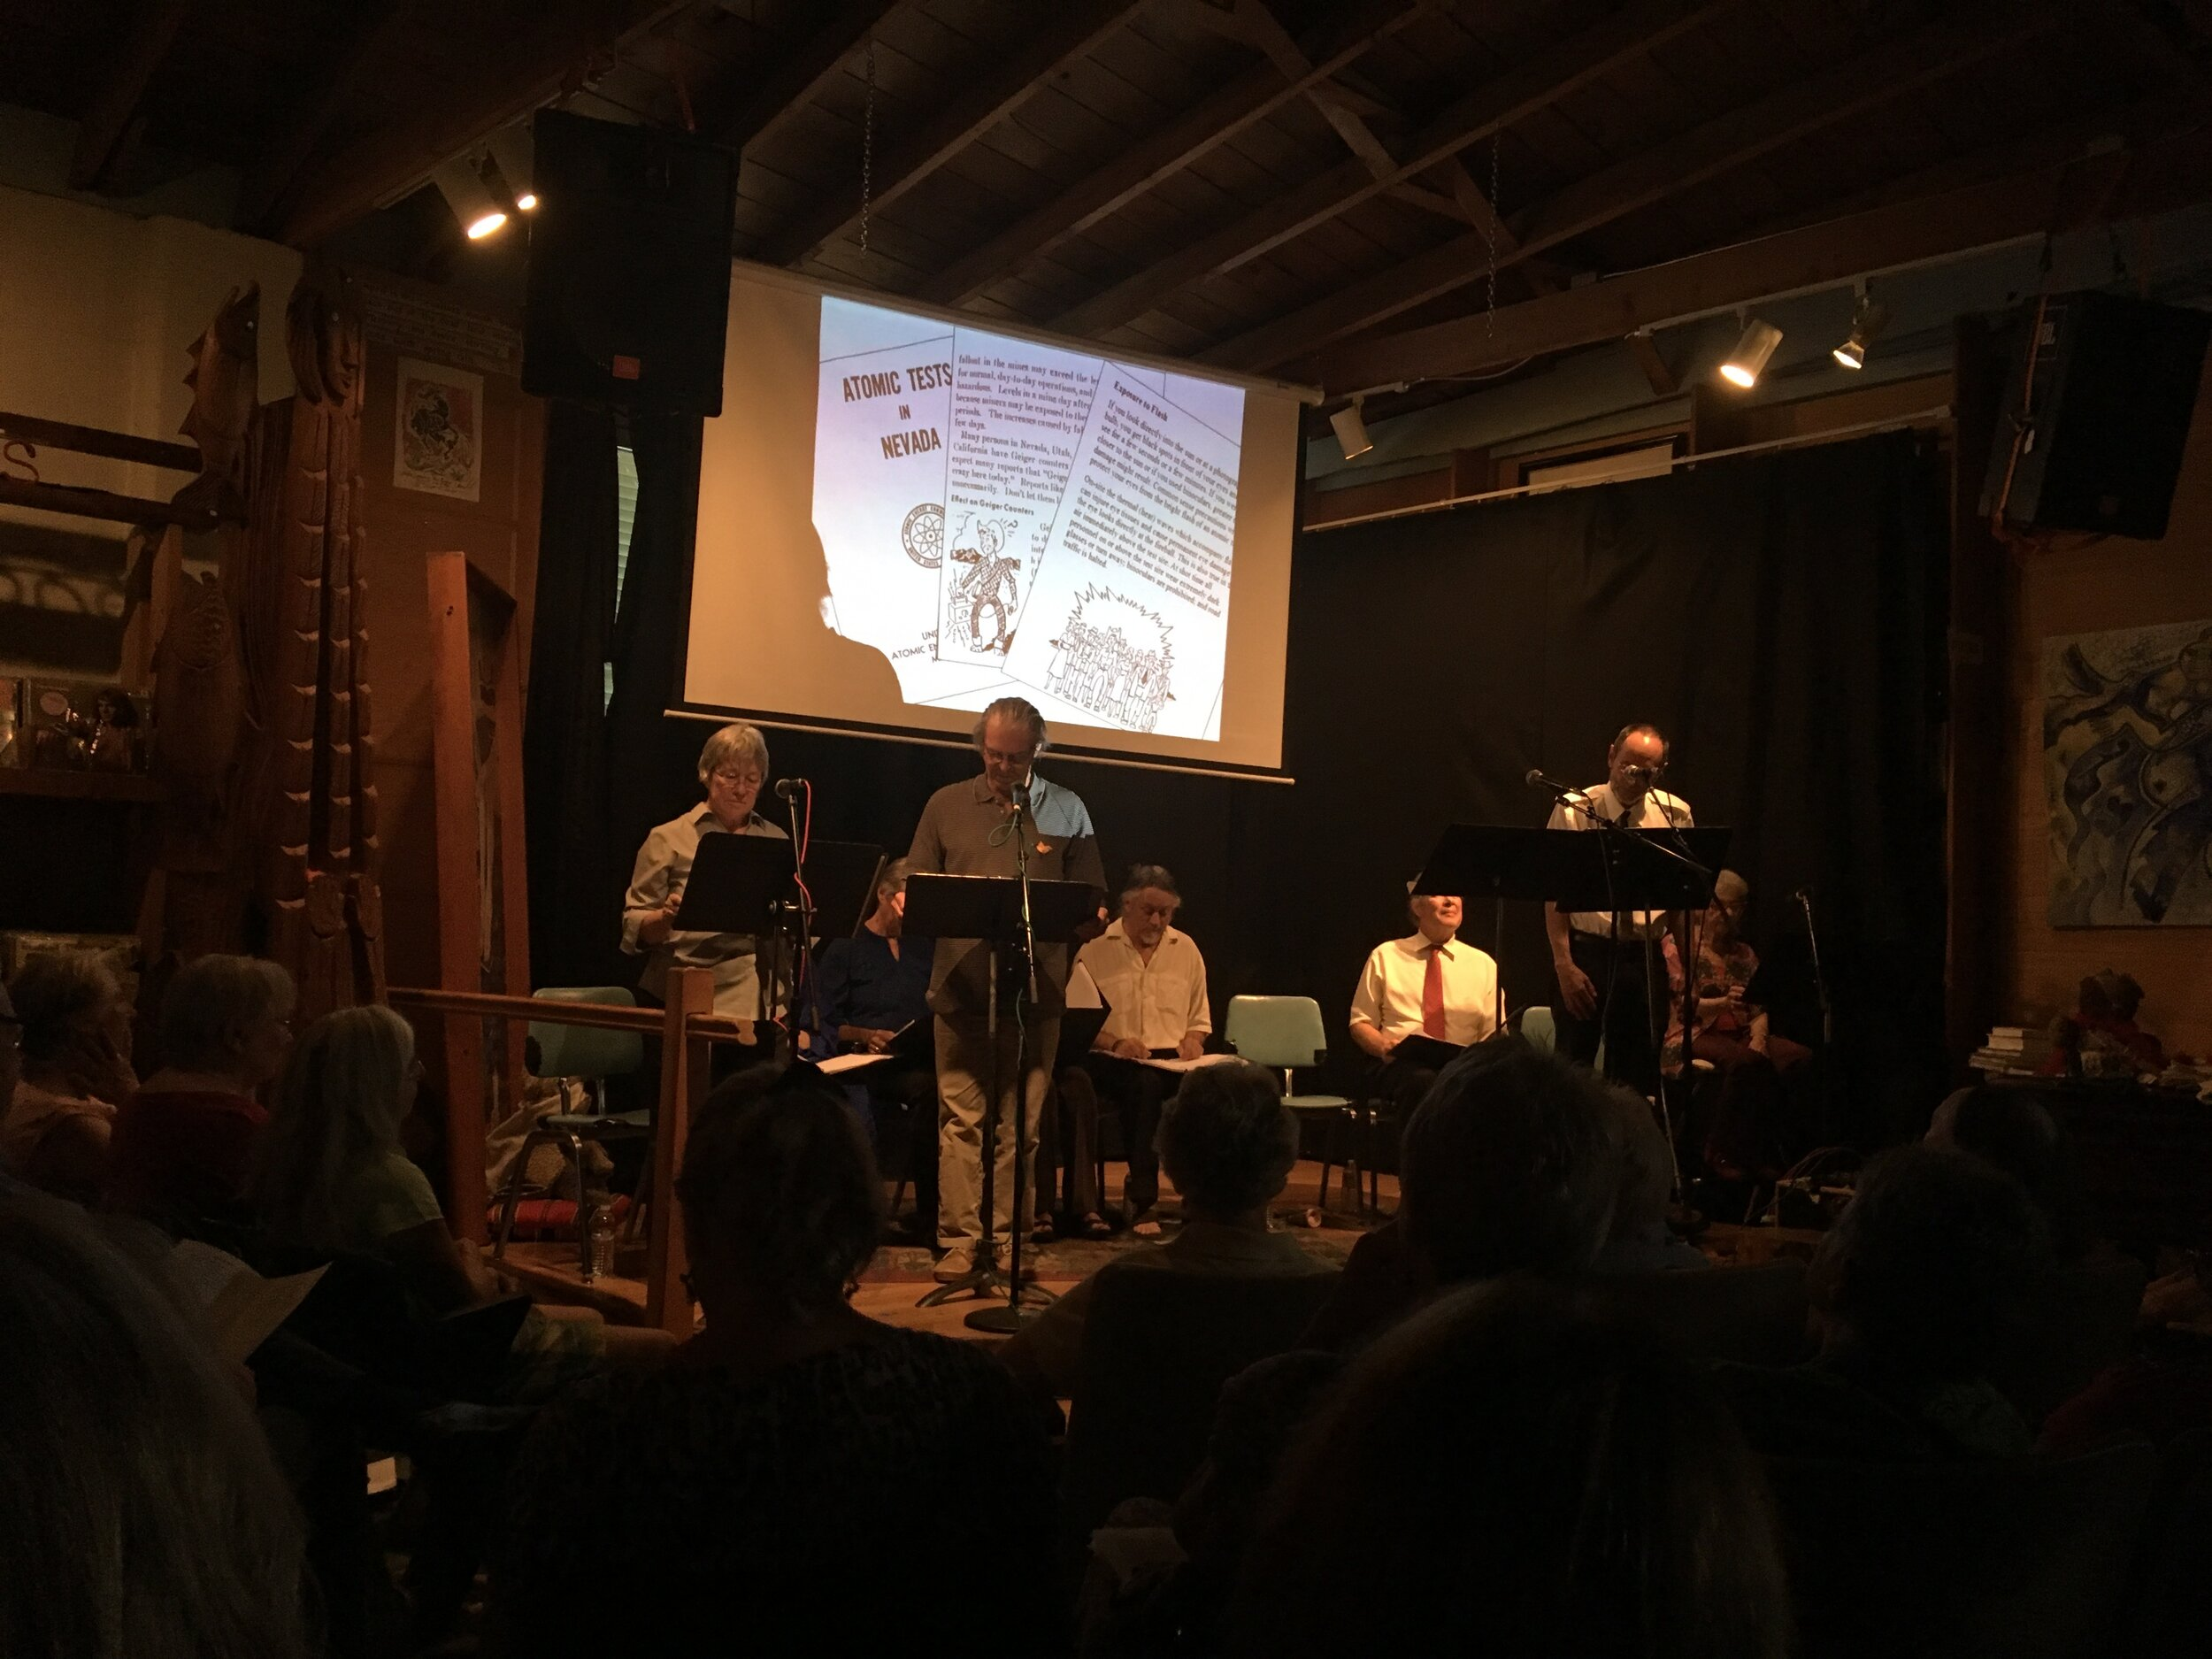 """Eugene, Oregon community reading of """"Exposed,"""" a play by Utah downwinder Mary Dickson, held in commemoration of the 2018 anniversary of the bombings of Hiroshima and Nagasaki. This event was organized by Oregon WAND (Women's Action for New Directions). Learn more about  Mary's play  and  WAND ."""